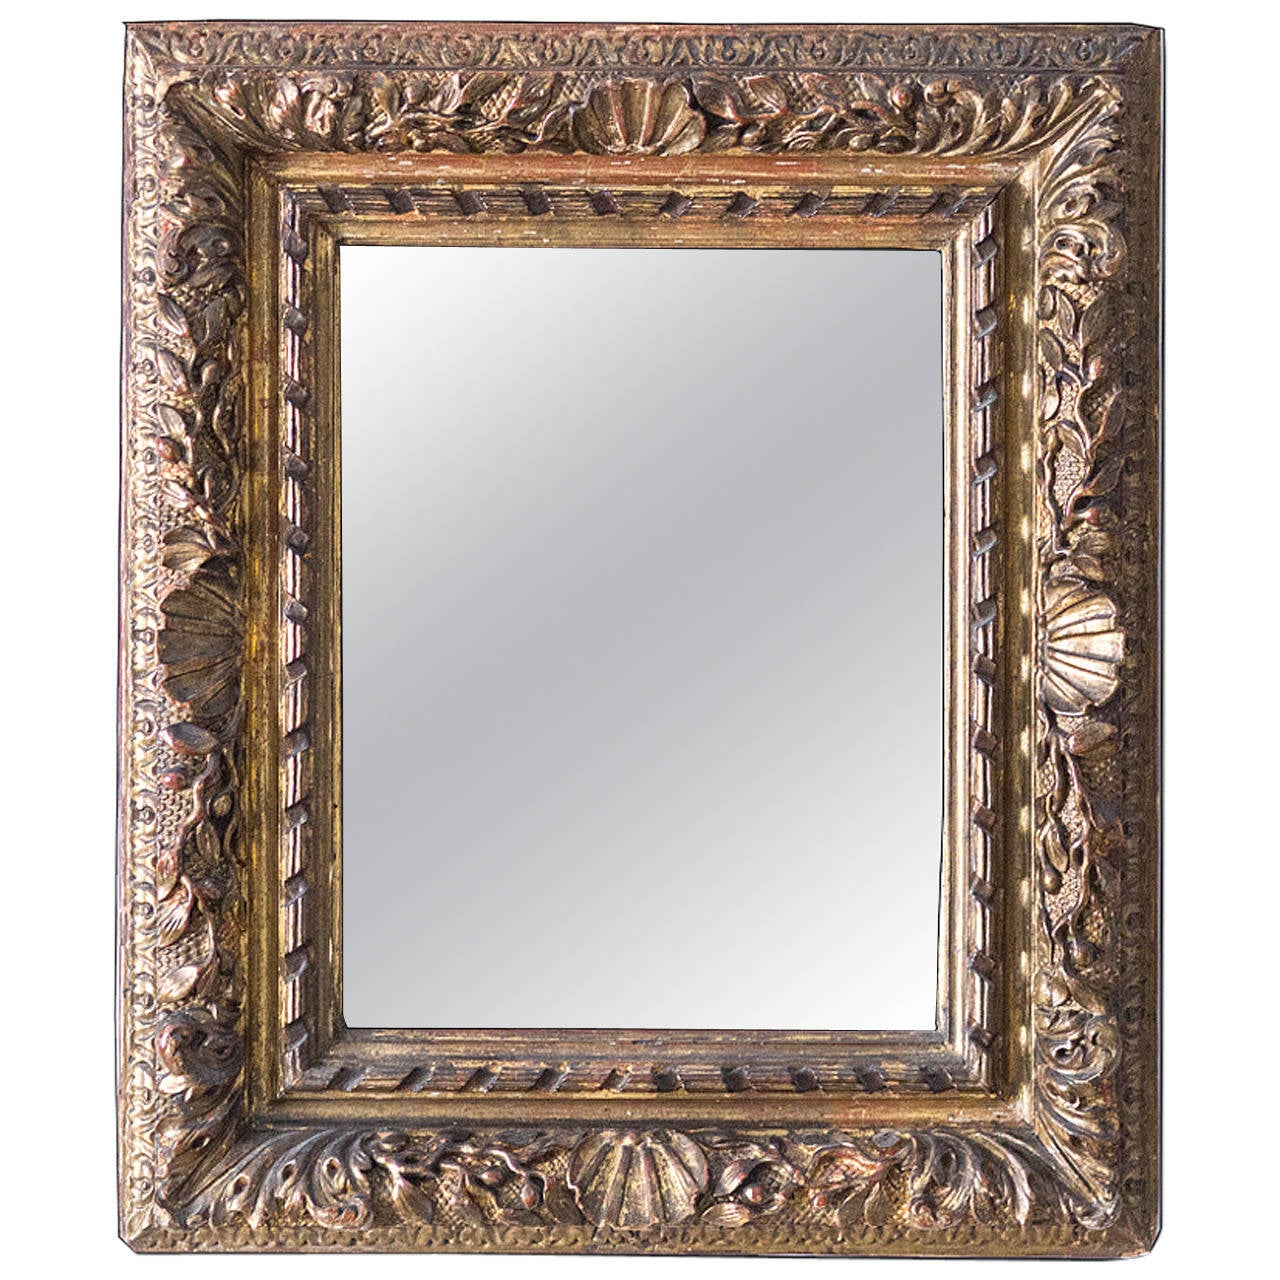 Baroque Frame 17th Century For Sale At 1stdibs